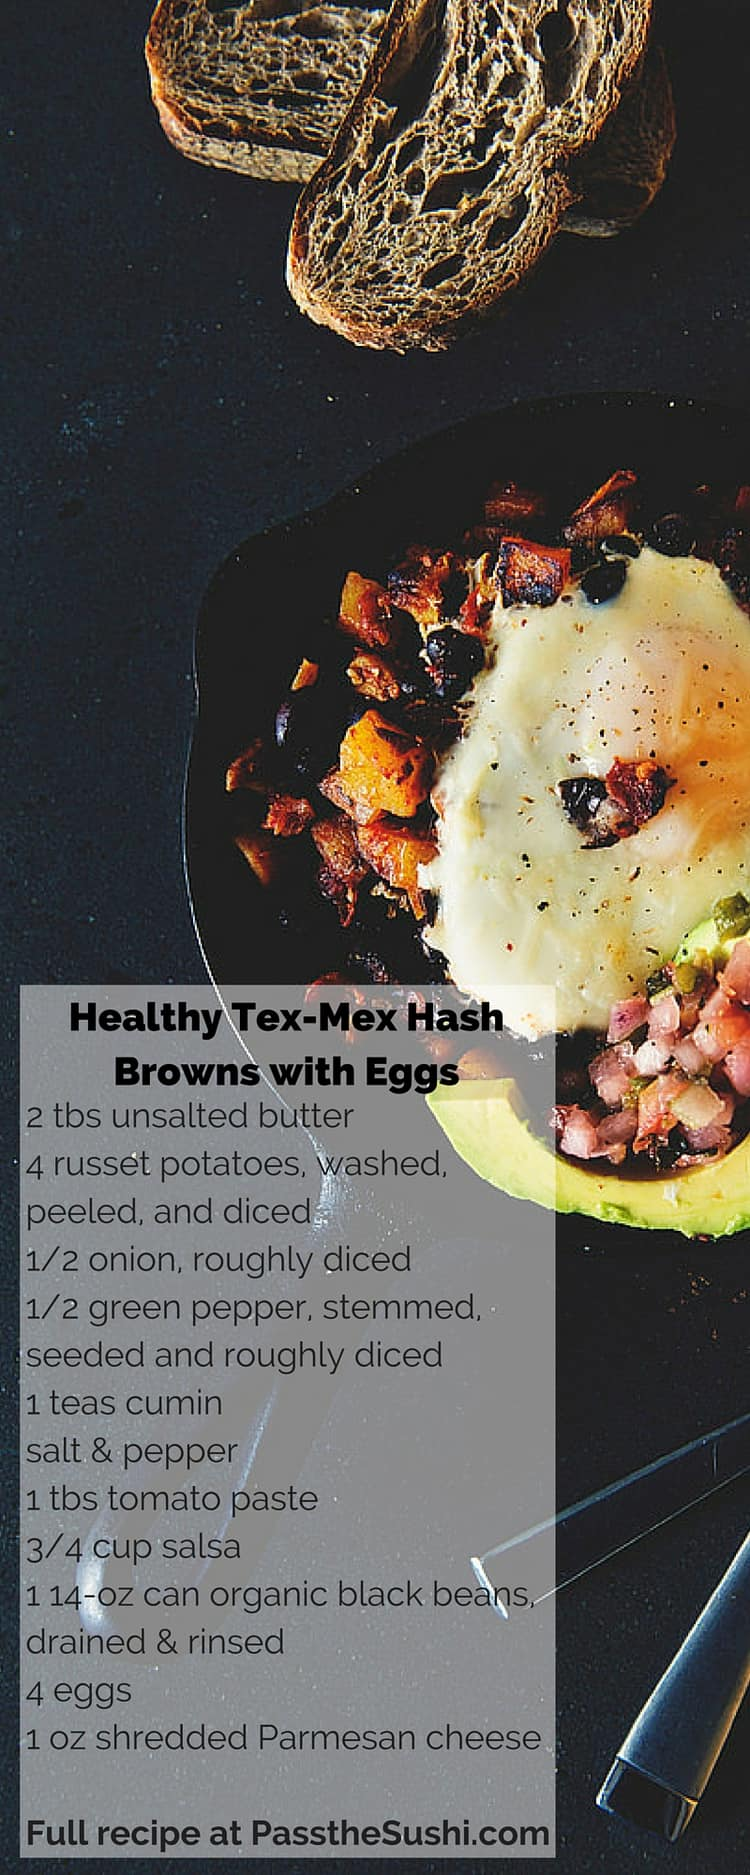 Healthy Spicy Tex-Mex Hash Browns with Eggs for Brunch